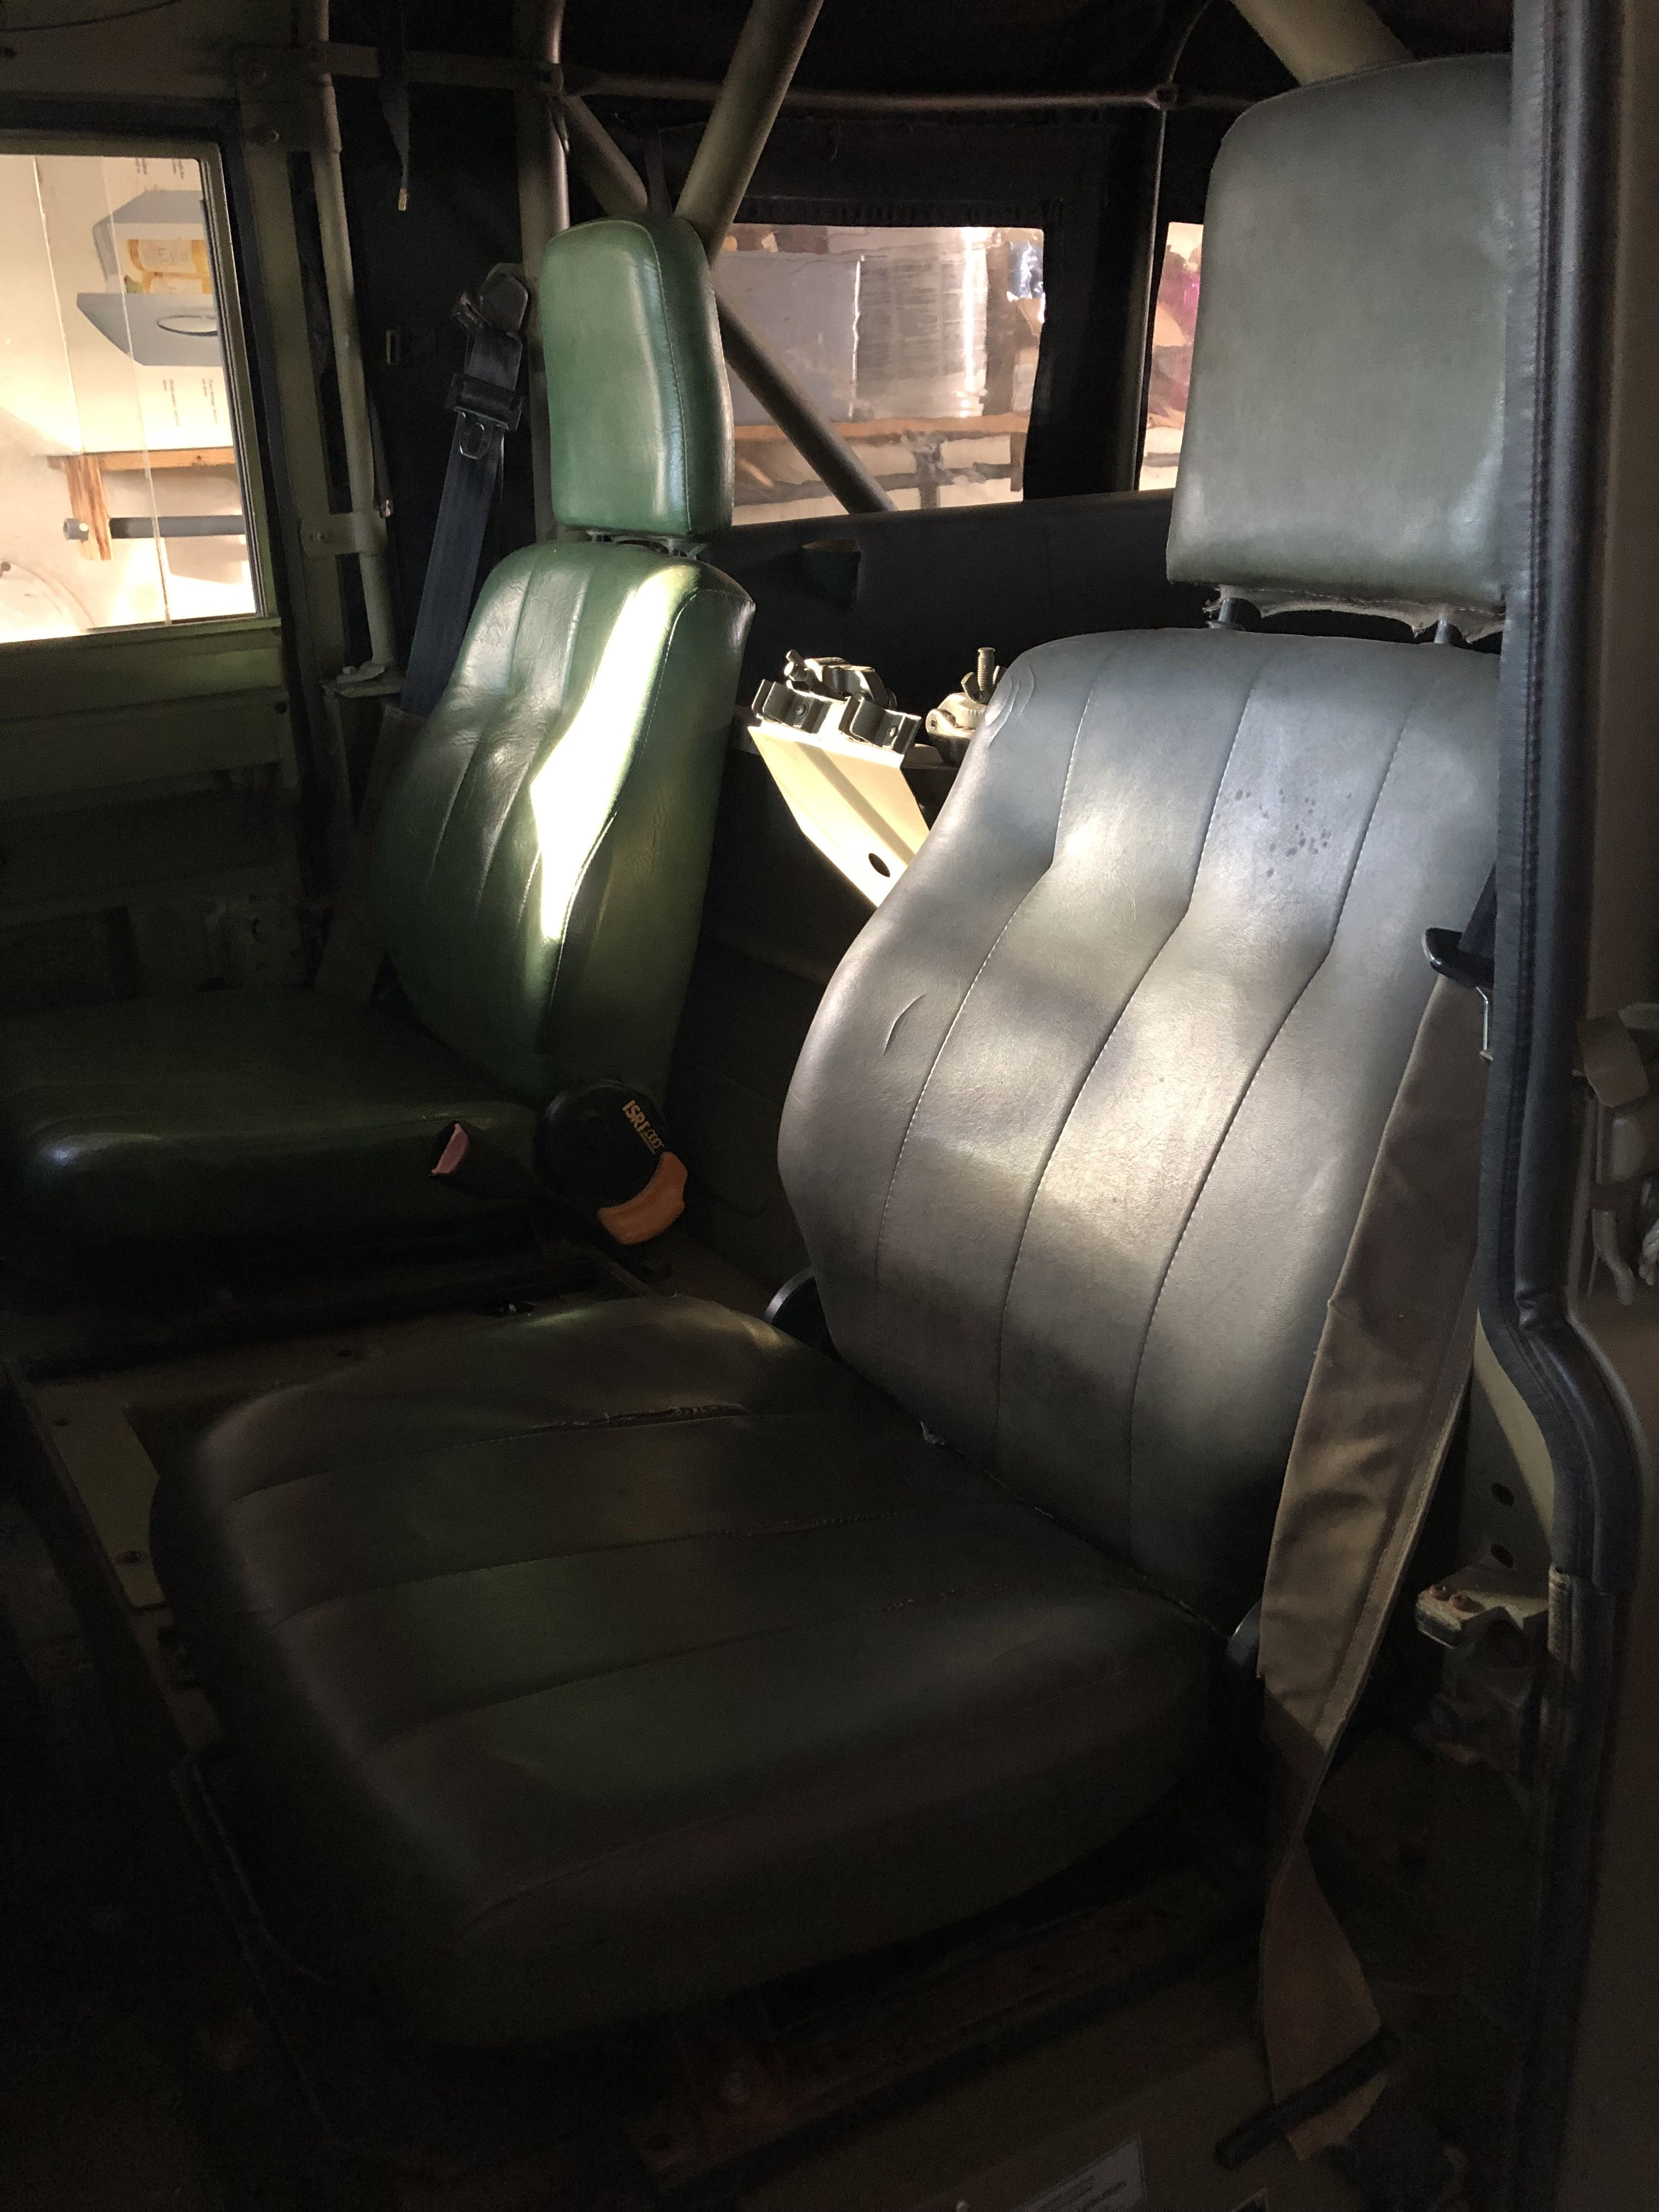 Pin by Dan Harden on Cars Trucks Electric massage chair